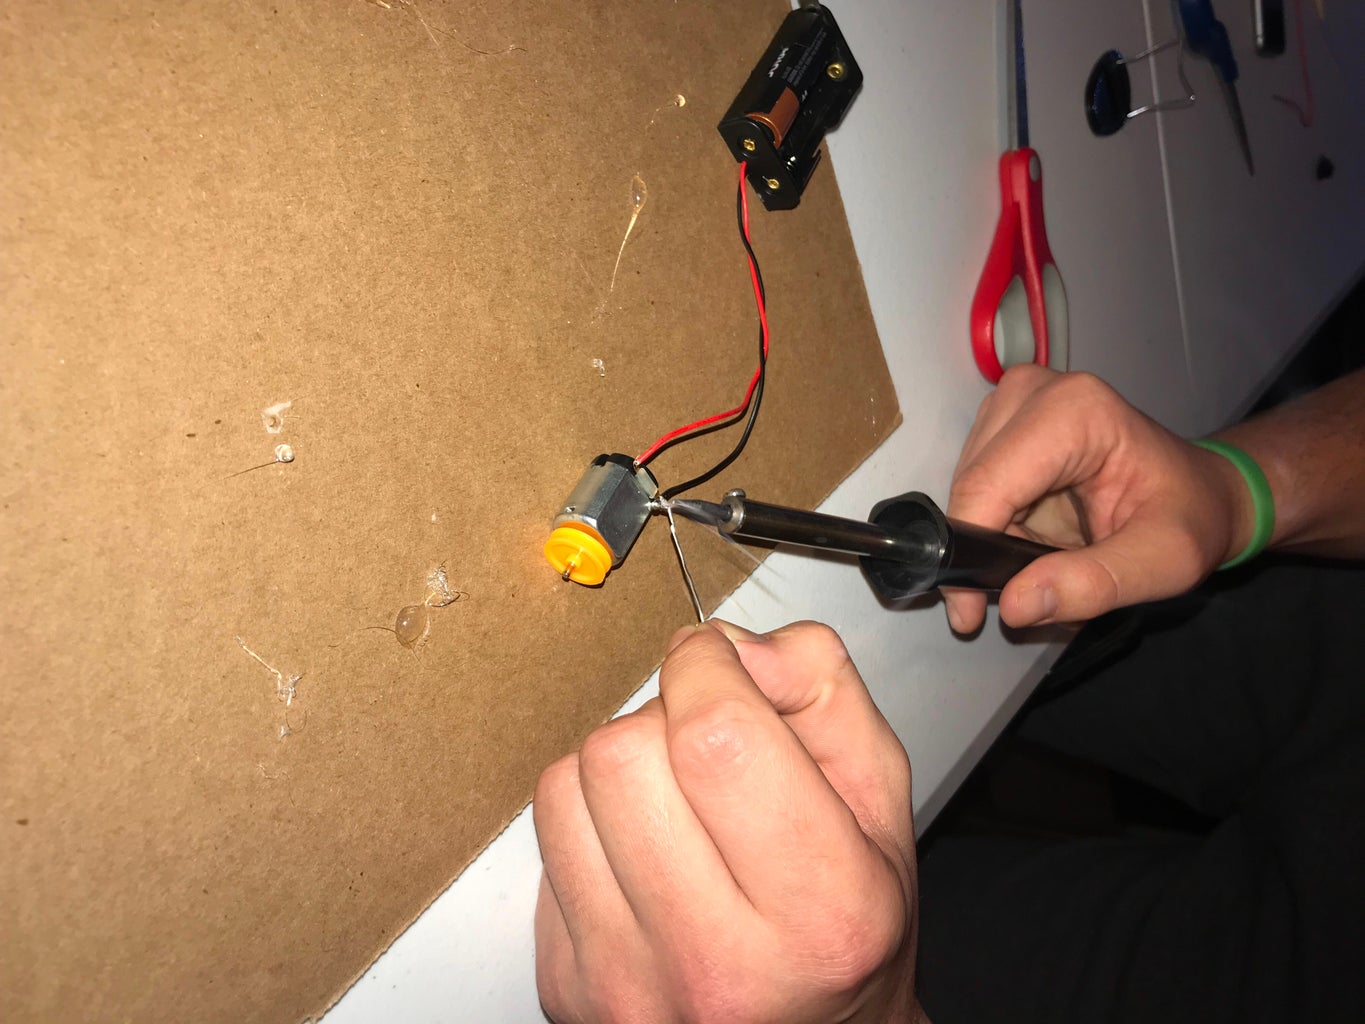 Soldering Wires to the Motor